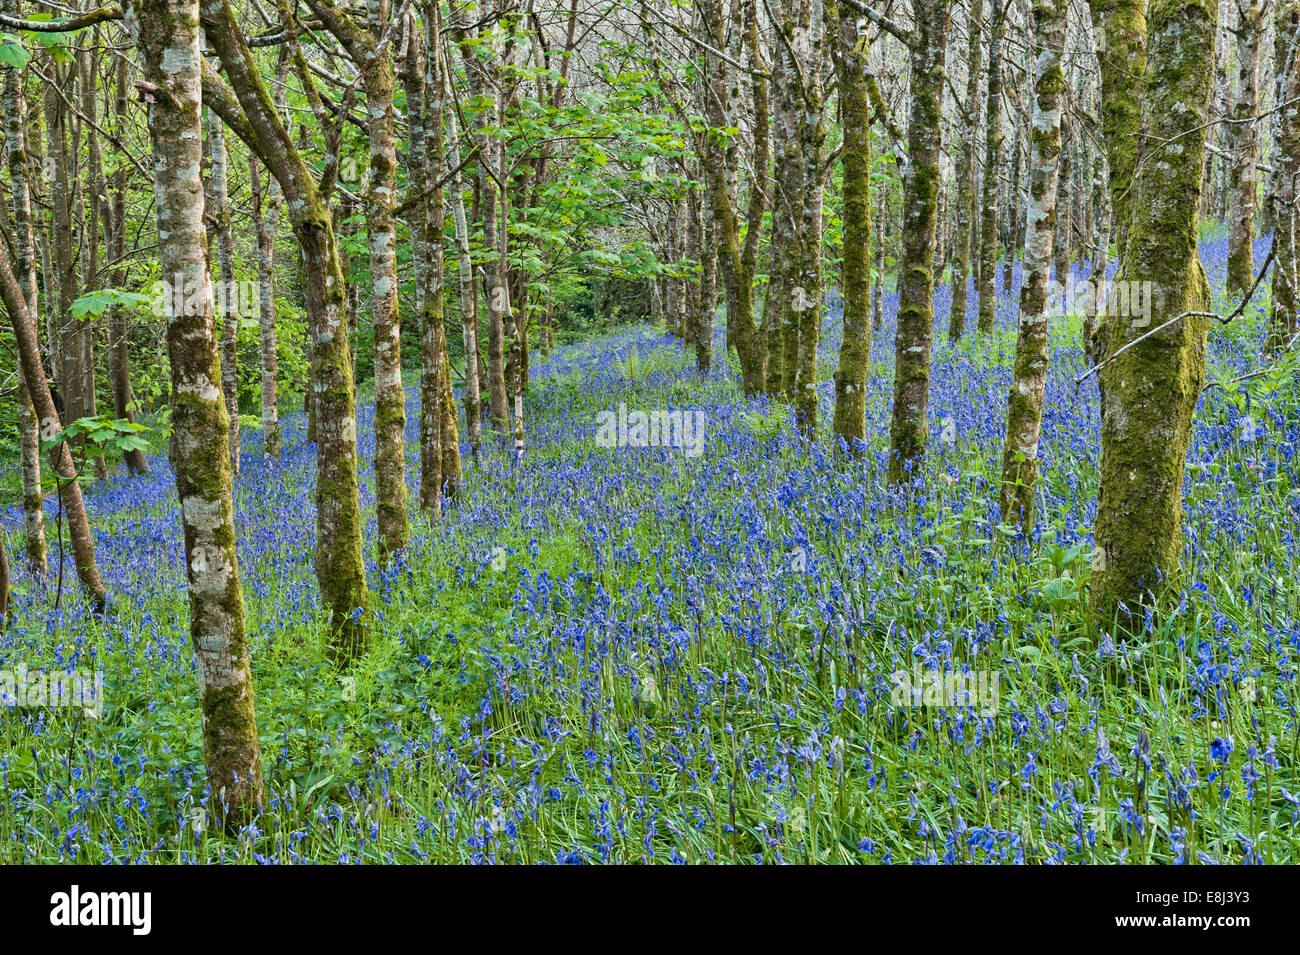 Marvellous Bluebells And Silver Birch Trees In The Woodland At Emmetts Garden  With Foxy  Trevarno Helston Cornwall Uk Woodland Beech And Silver Birch Trees With Appealing House Gardens Also Garden Light Sets In Addition York Gate Garden And Plastic Garden Sheds For Sale As Well As Hilton Garden Inn Chelsea Reviews Additionally Garden Borders From Alamycom With   Foxy Bluebells And Silver Birch Trees In The Woodland At Emmetts Garden  With Appealing  Trevarno Helston Cornwall Uk Woodland Beech And Silver Birch Trees And Marvellous House Gardens Also Garden Light Sets In Addition York Gate Garden From Alamycom